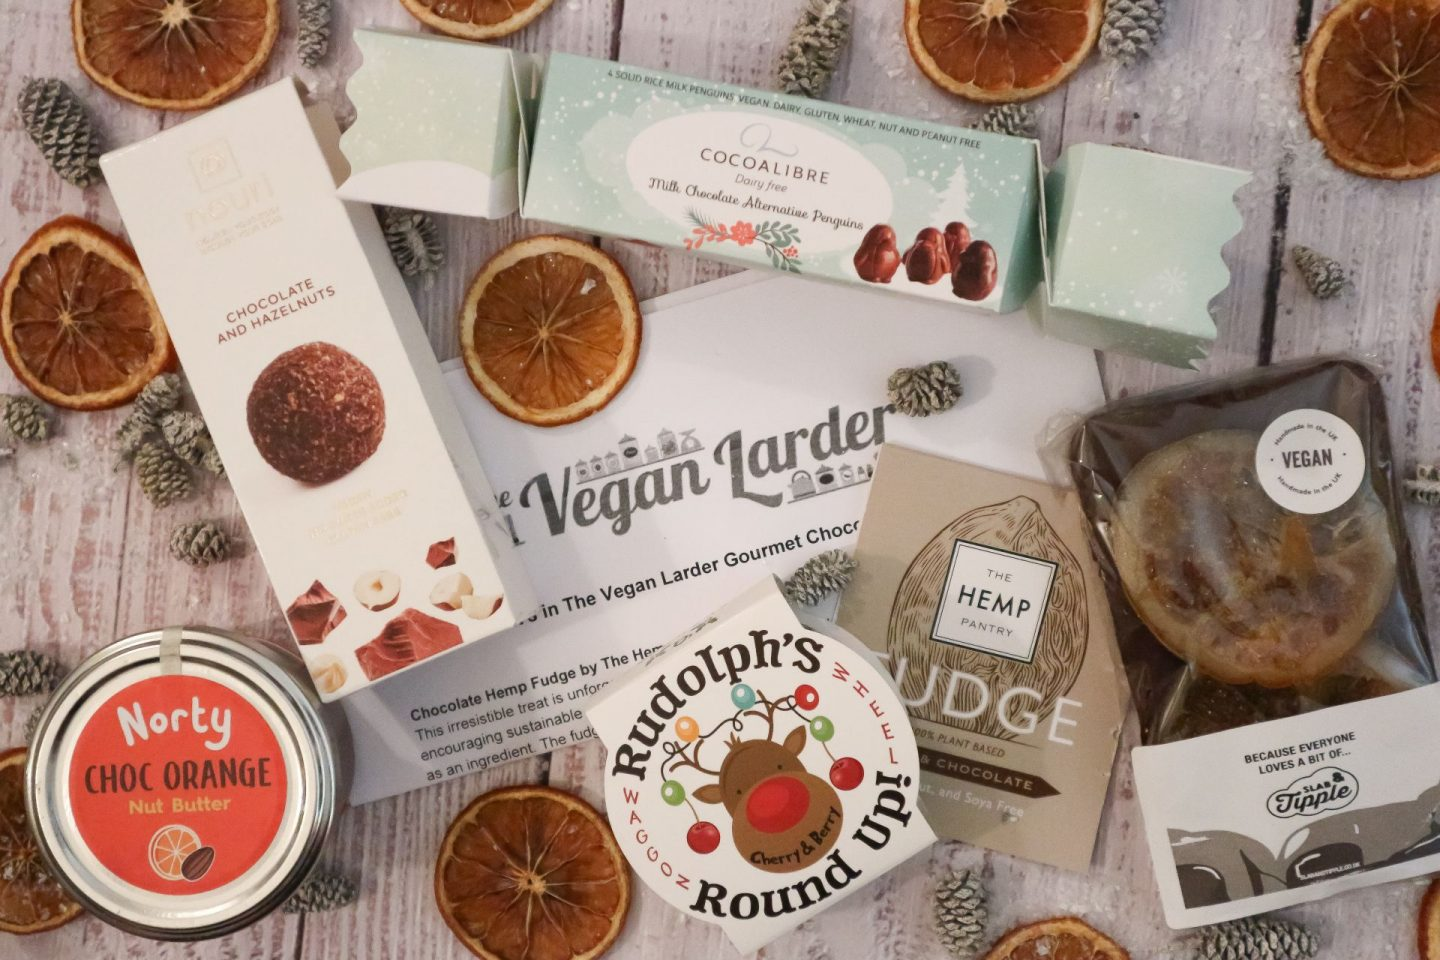 The Vegan Larder Christmas Gourmet Chocolate Gift Box